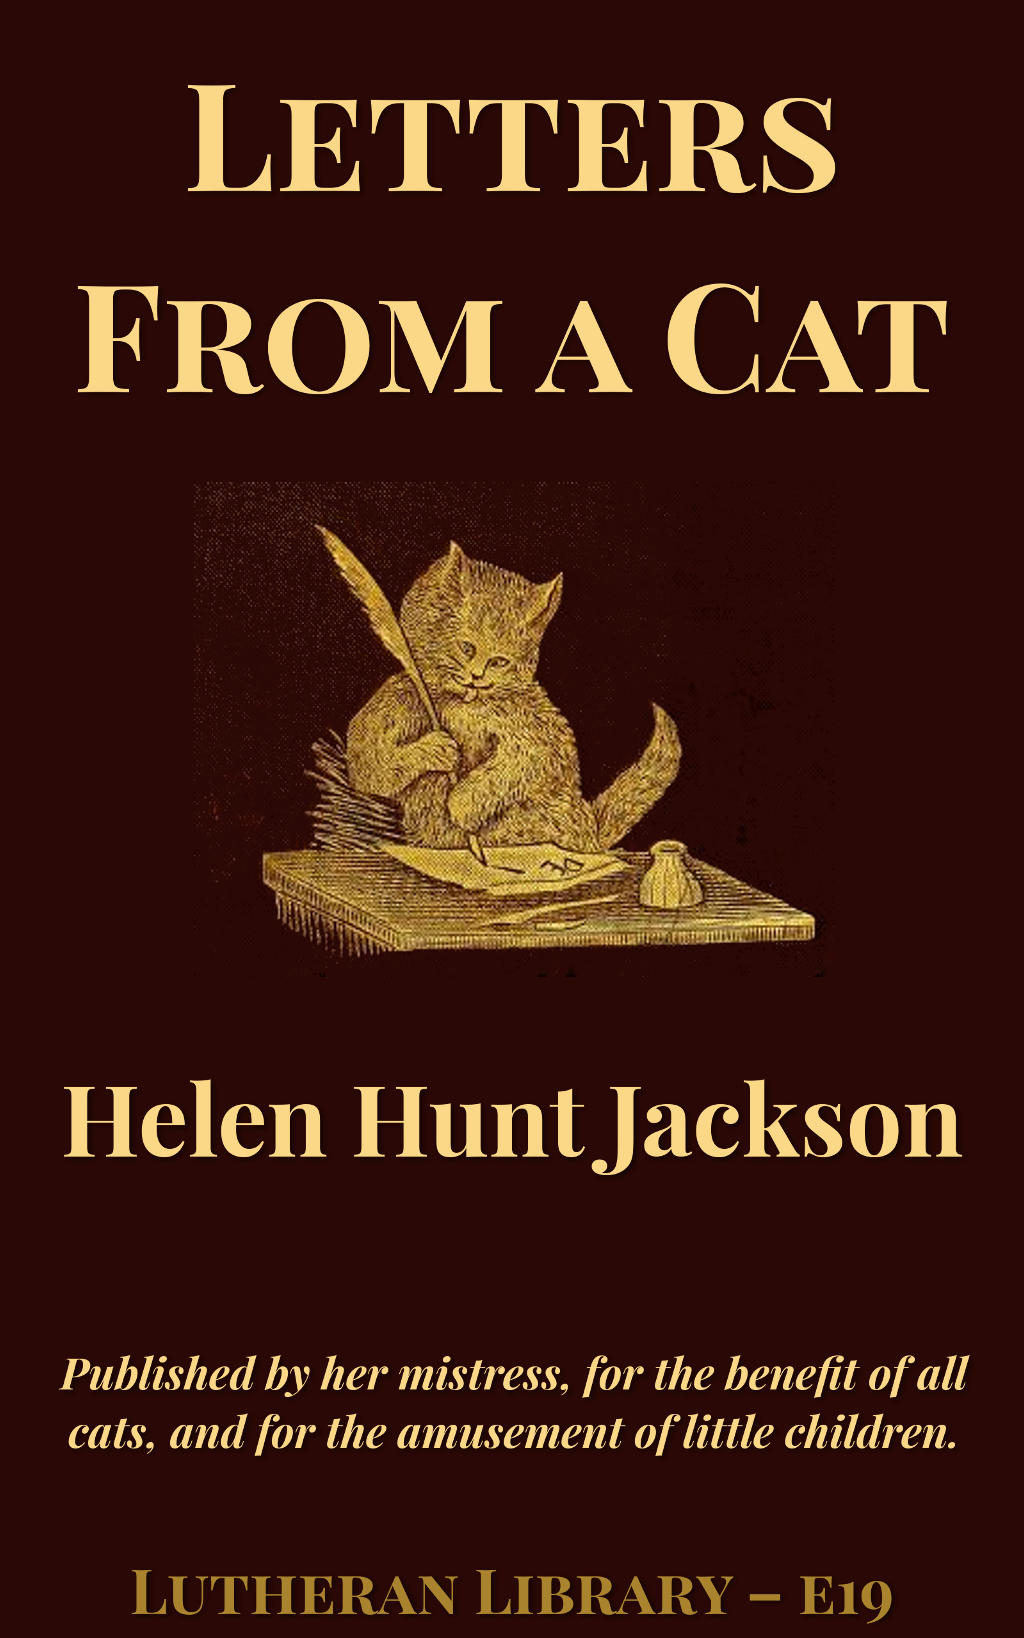 Letters from a cat, published by her mistress for the benefit of all cats and the amusement of little children by Helen Hunt Jackson